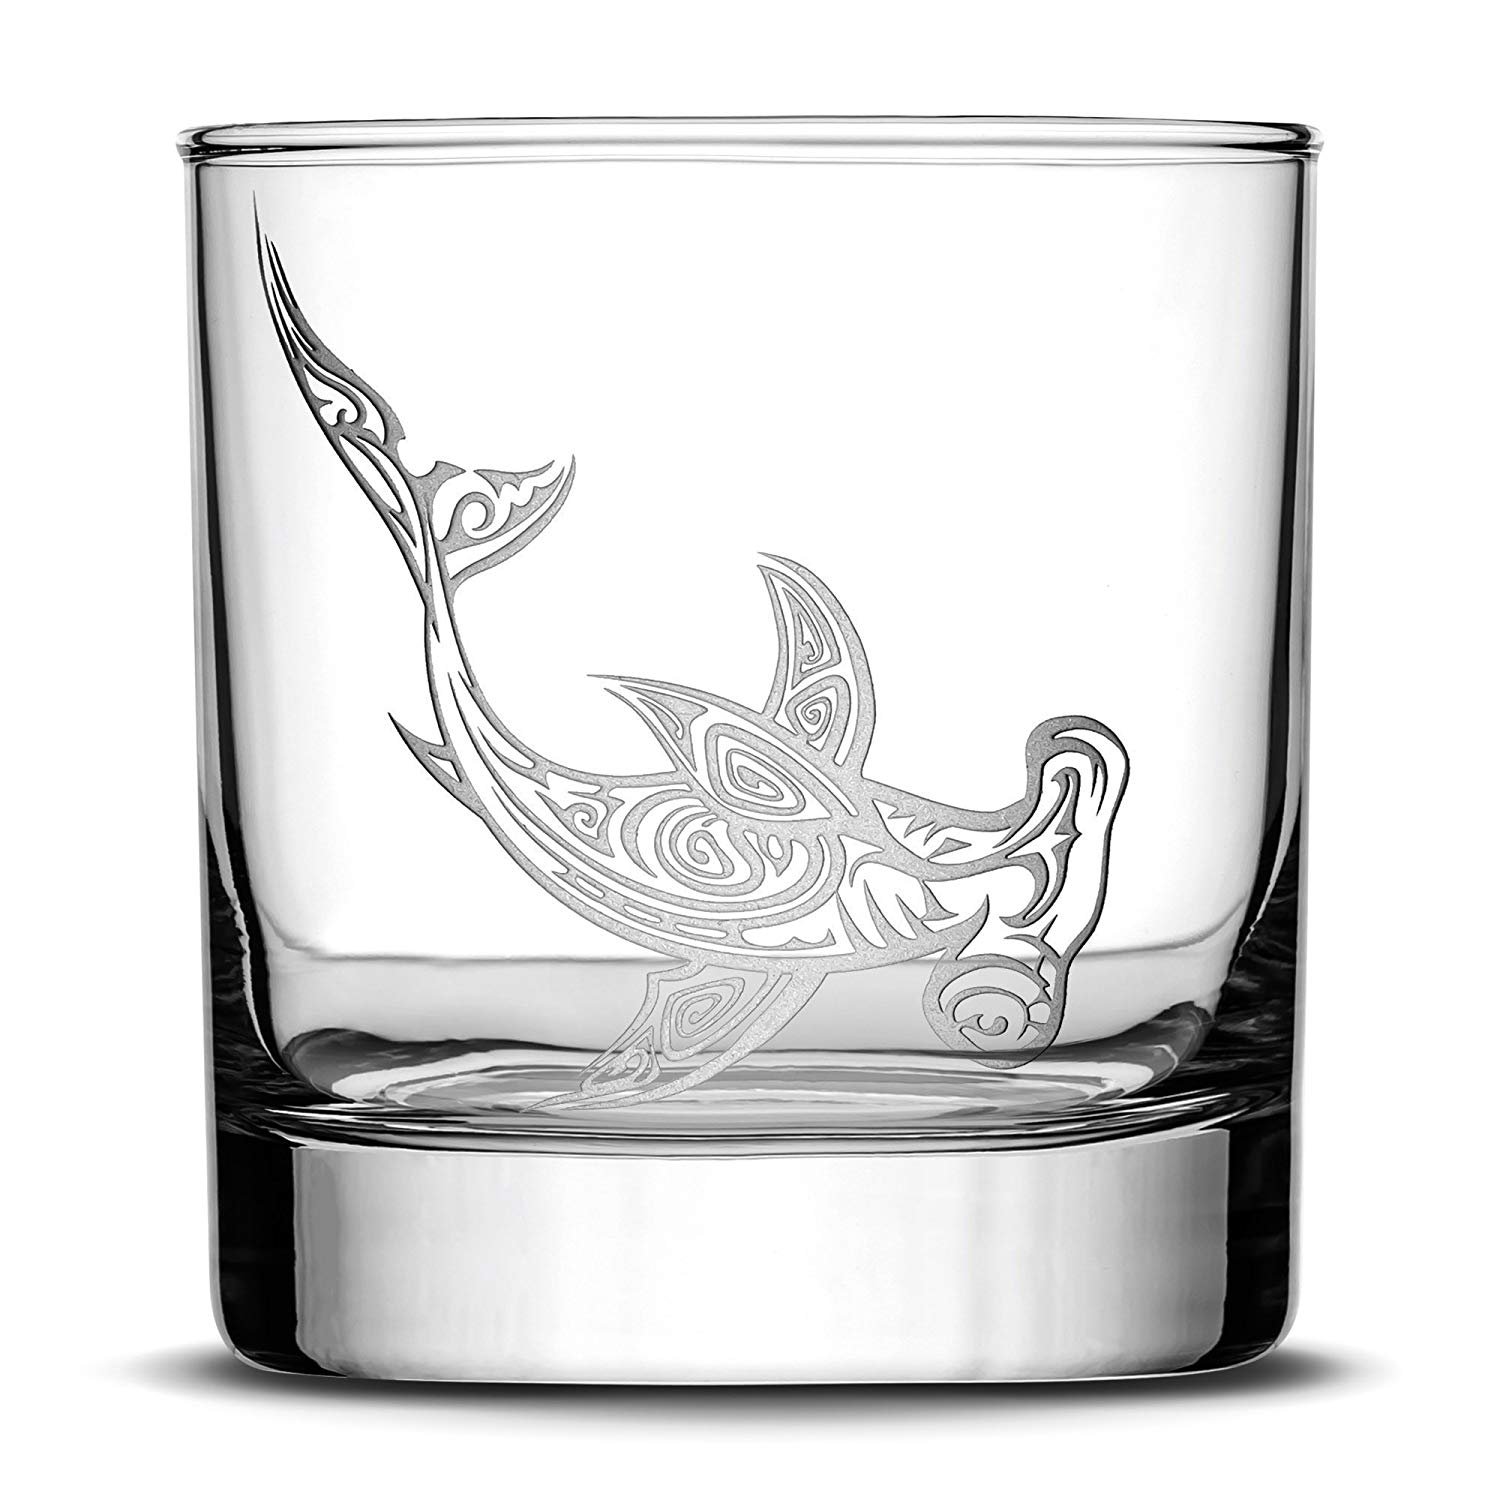 Premium Hammerhead Shark Whiskey Glass, Hand Etched Tribal Design, 10oz Rocks Glass, Highball Gifts, Made in USA, Sand Carved by Integrity Bottles